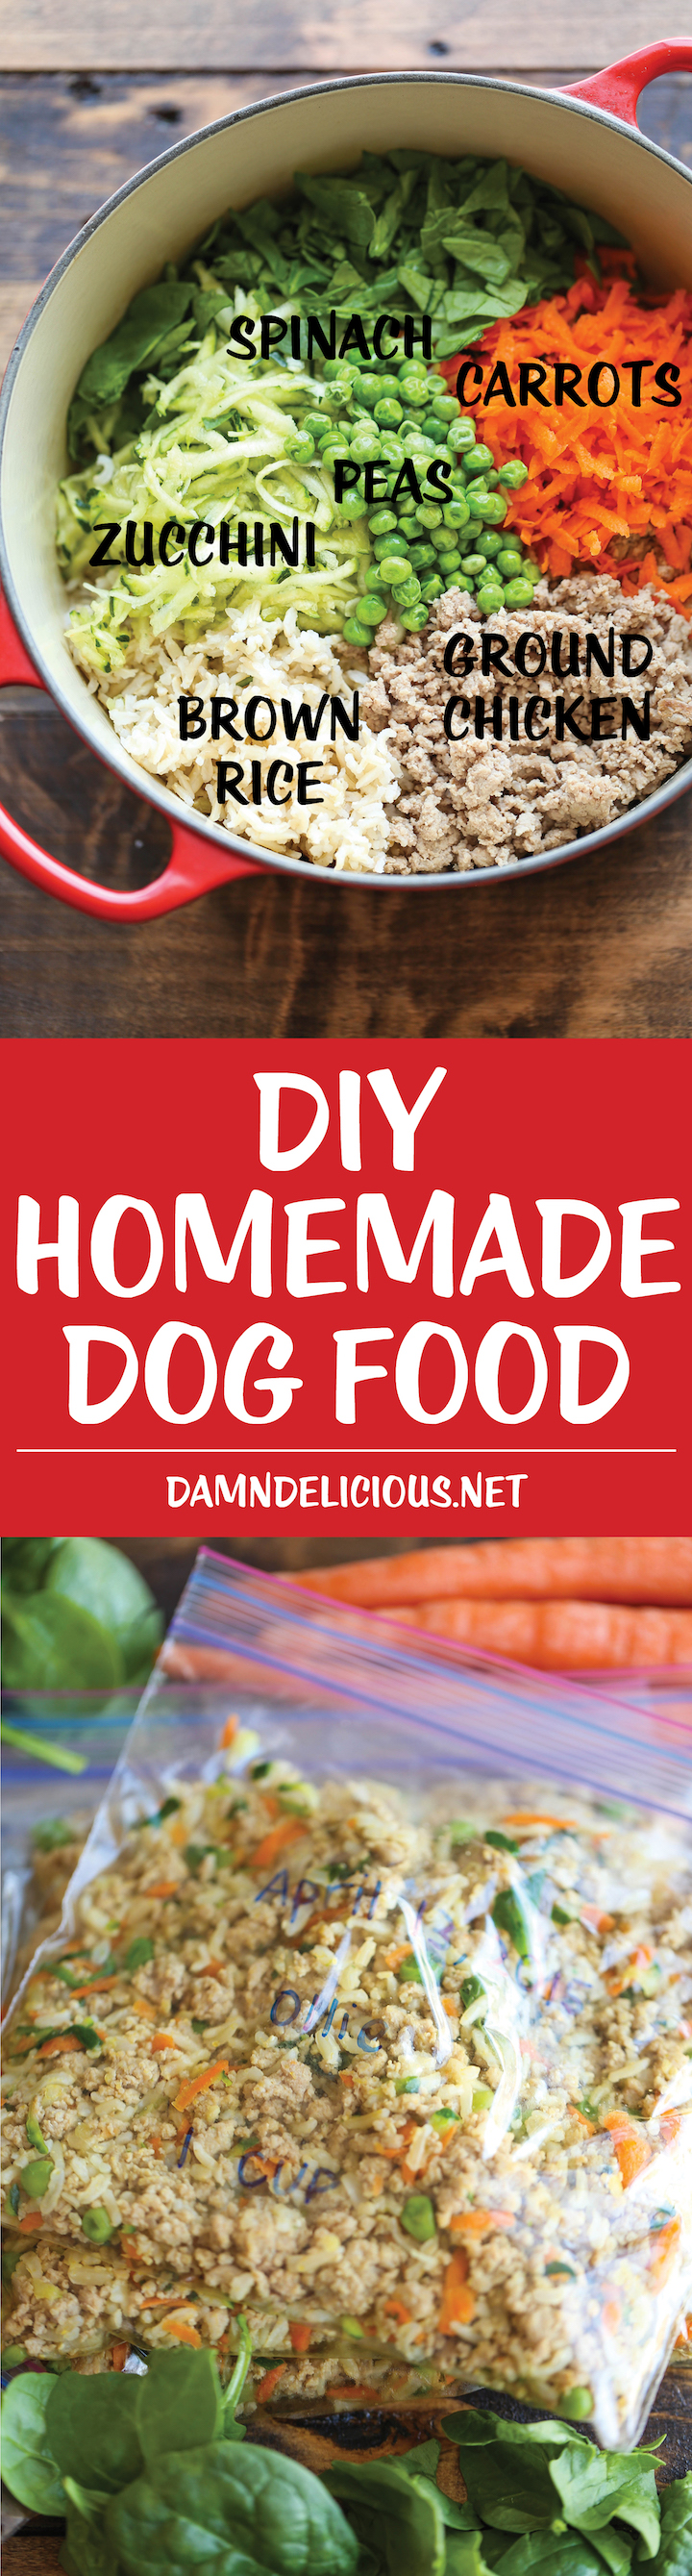 Diy homemade dog food damn delicious diy homemade dog food keep your dog healthy and fit with this easy peasy homemade forumfinder Choice Image